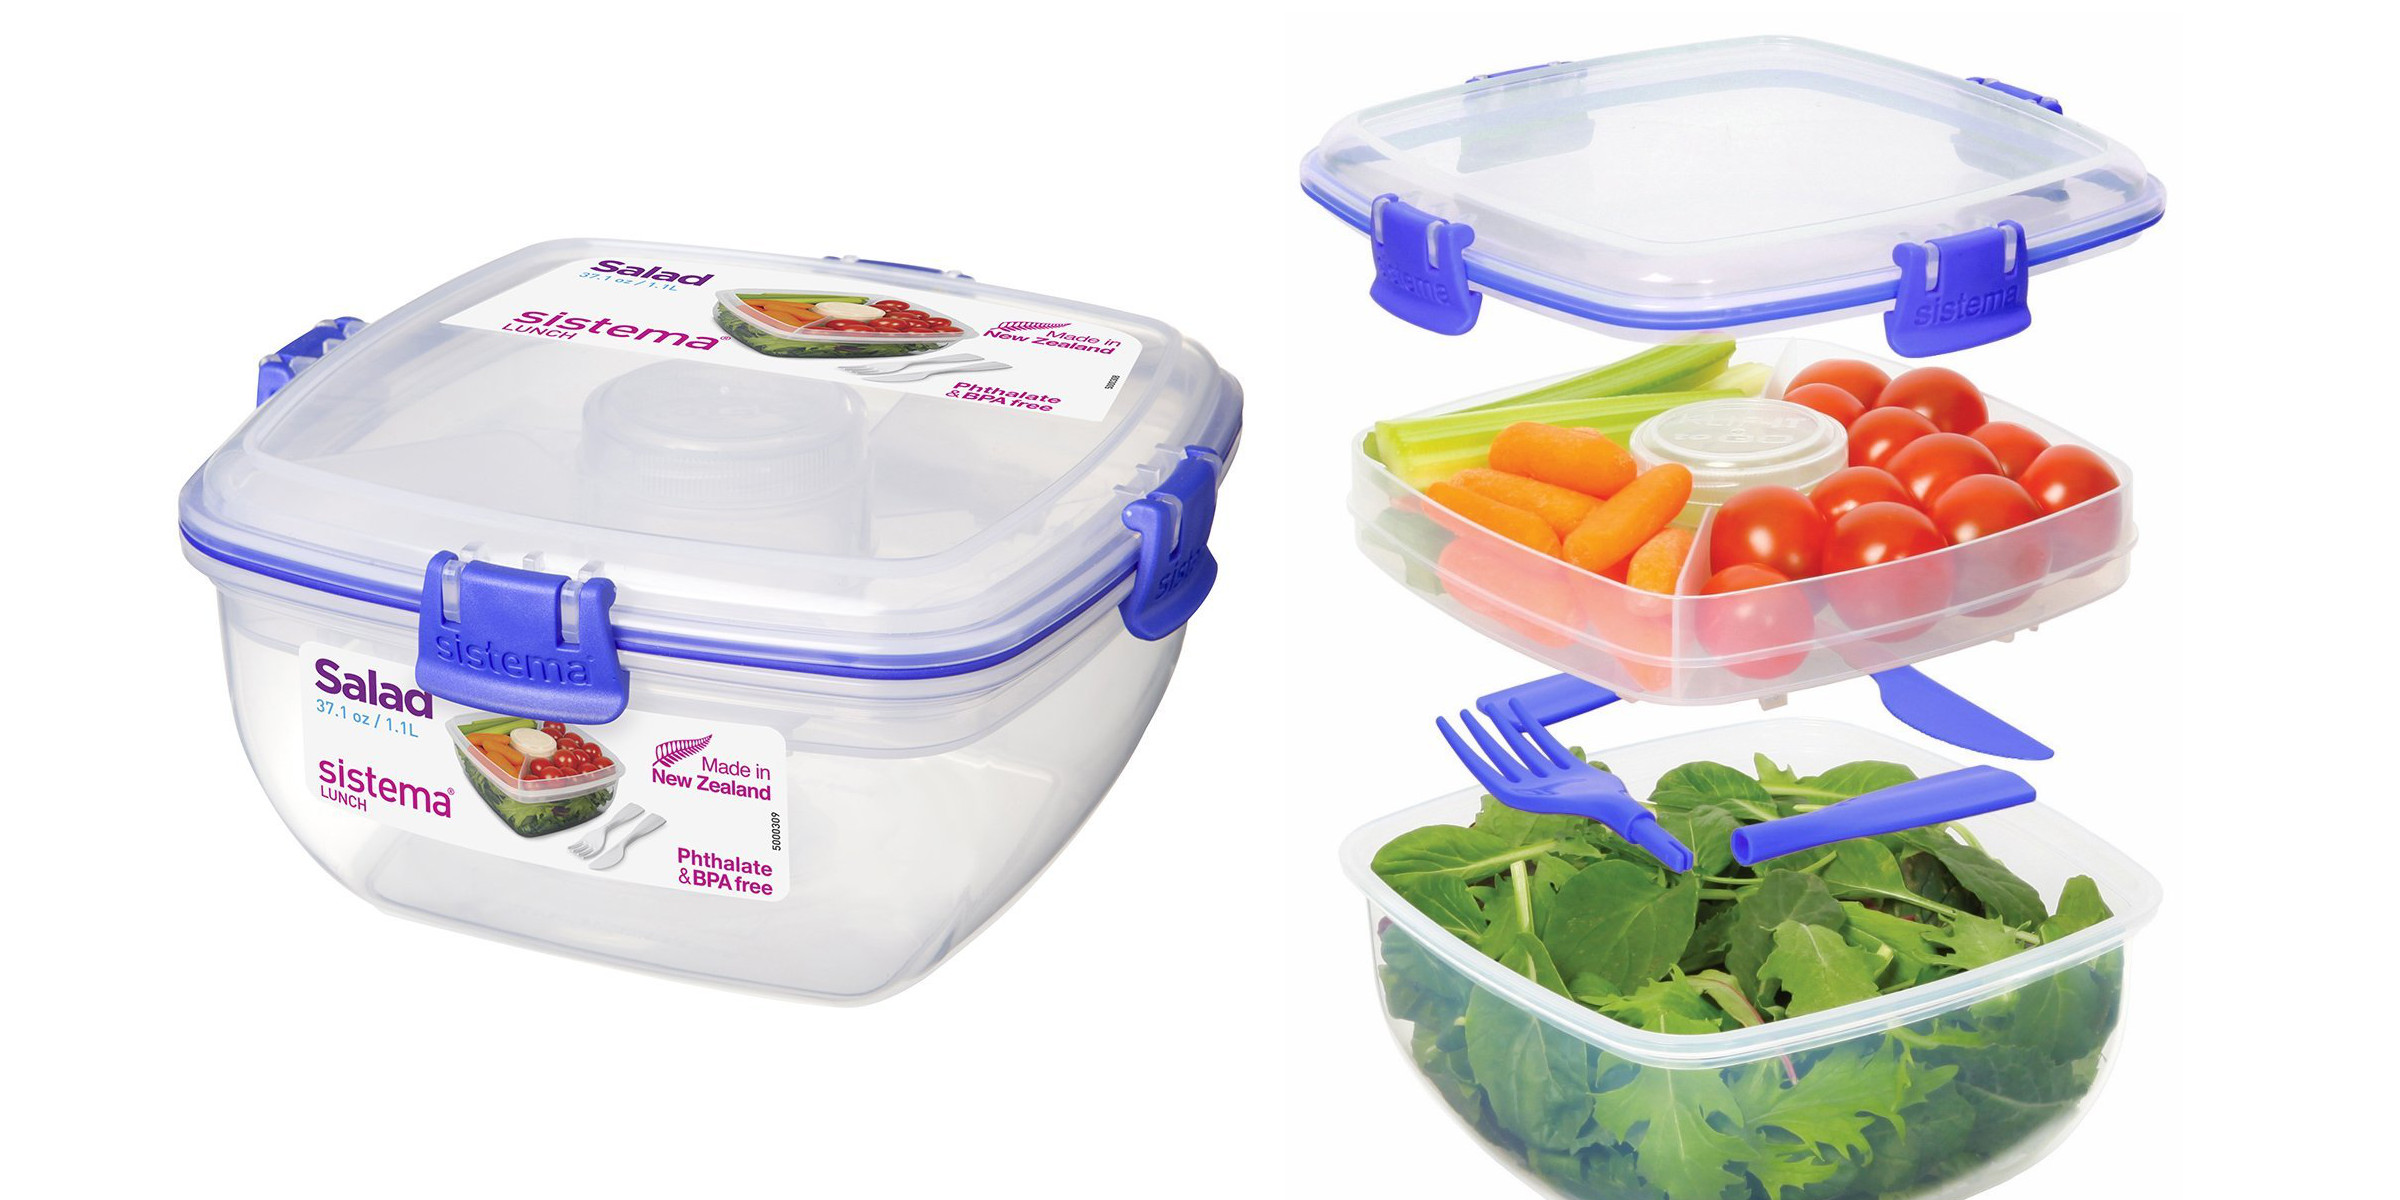 Sistema Klip It Lunch Container $7 Prime Shipped (Reg. $12) + Food Storage  Sets From $16, More